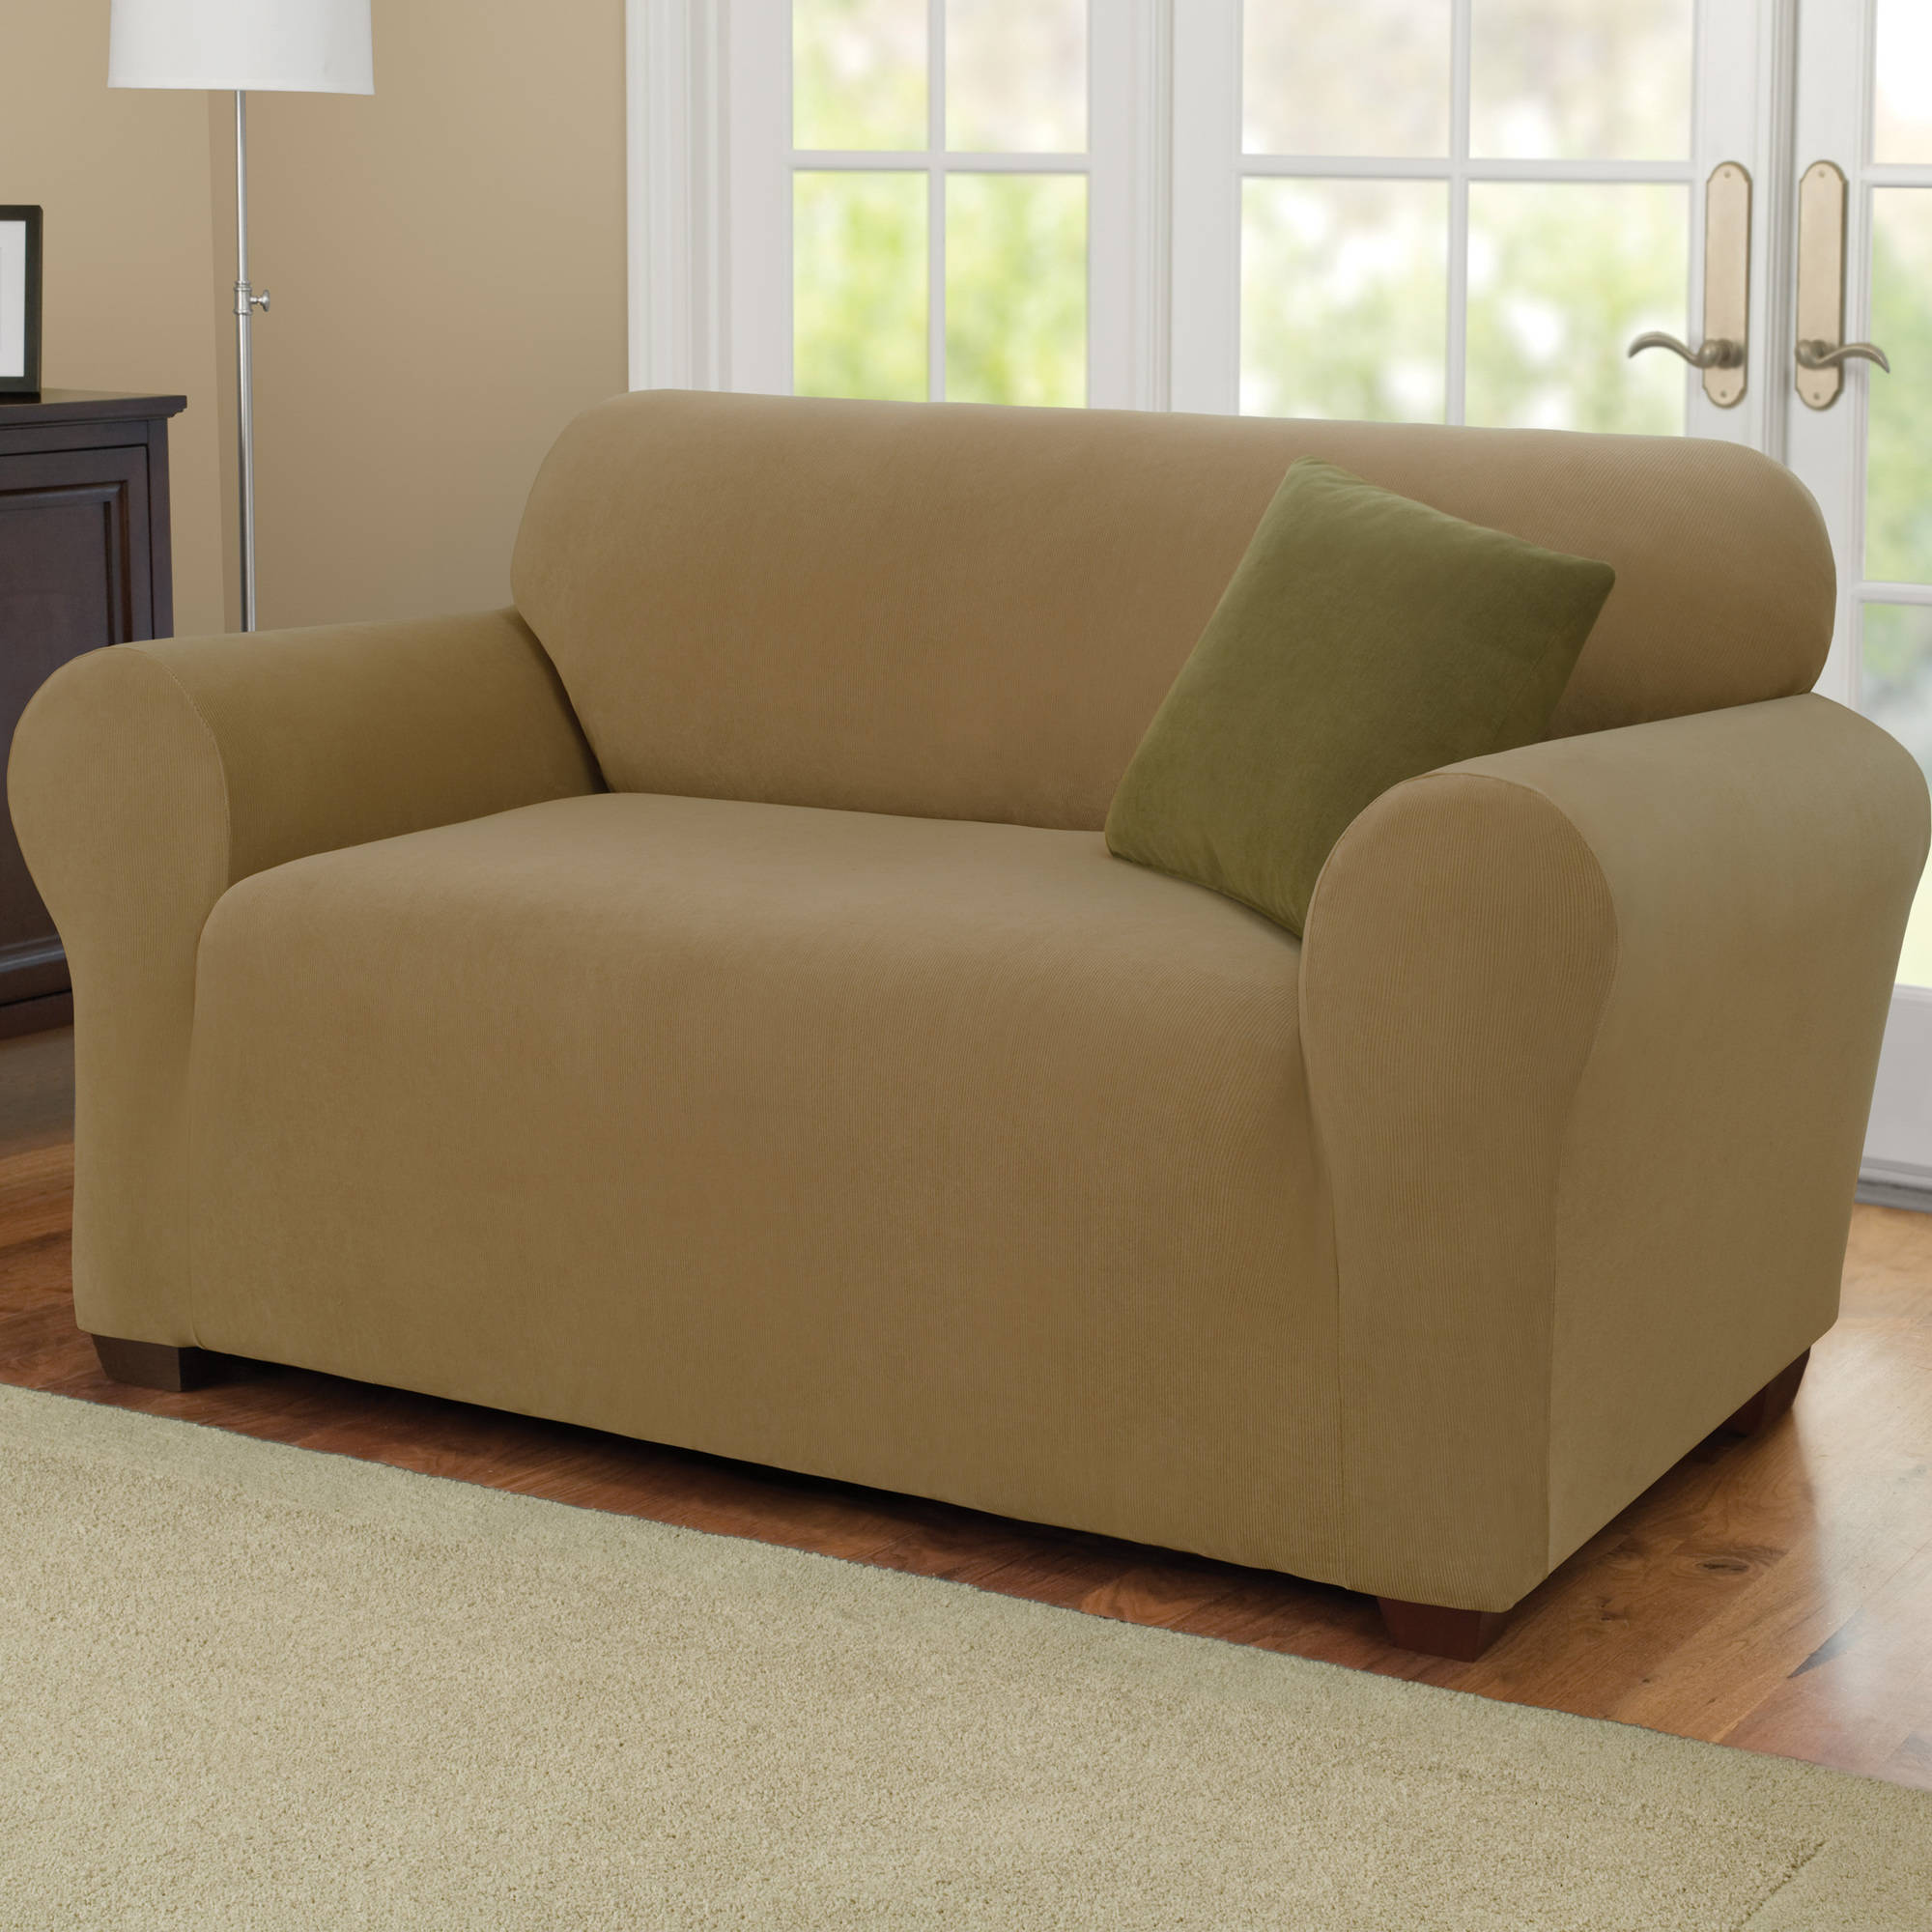 7 piece sofa covers decorating around a dark brown sure fit simple stretch subway 1 recliner slipcover